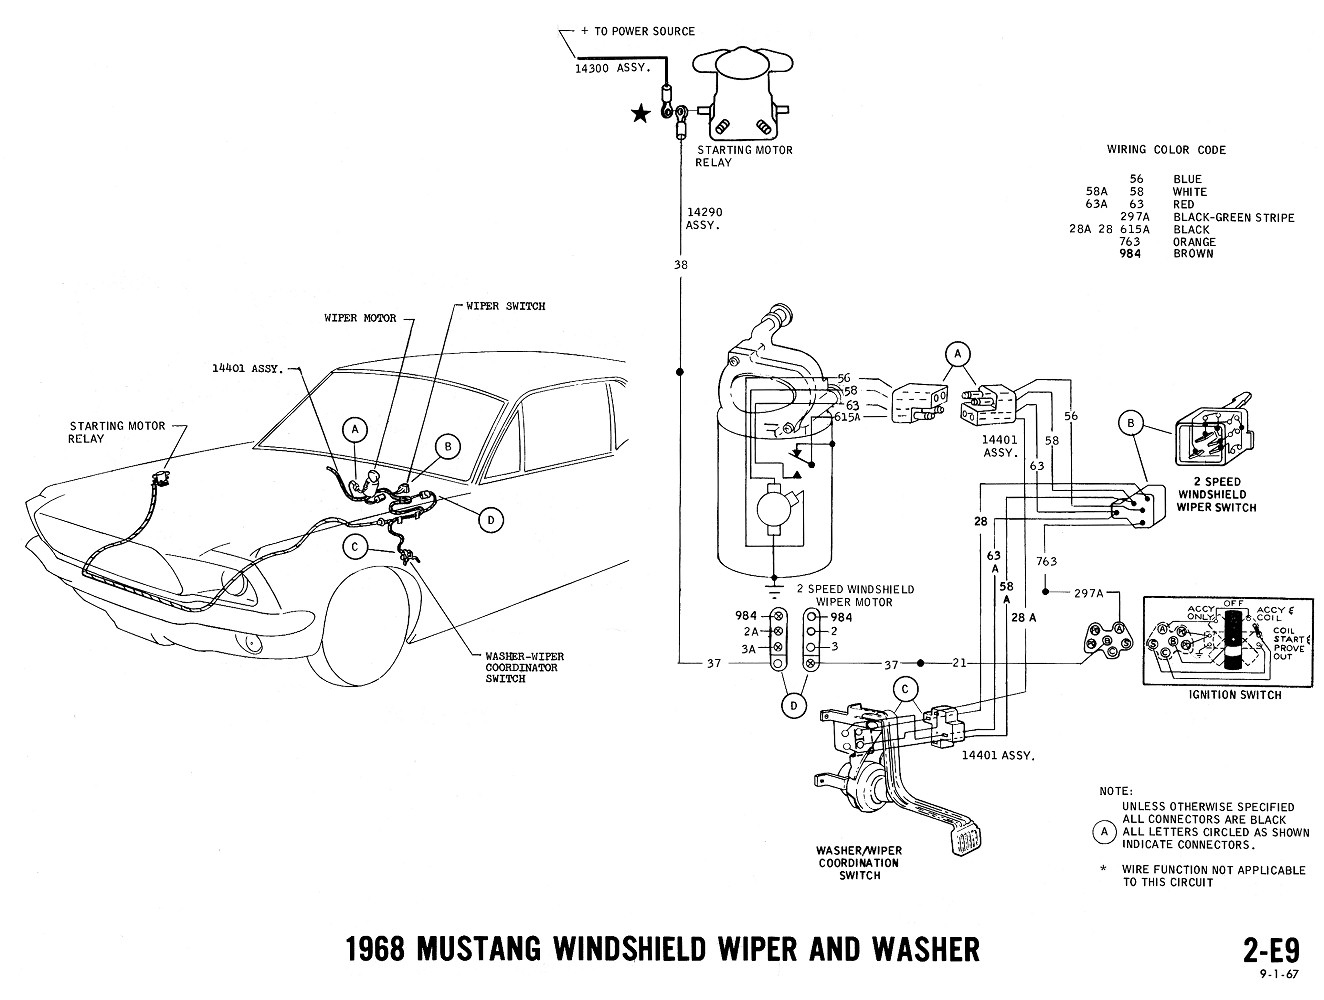 1968 mustang wiring diagrams evolving software windshield wipers washers